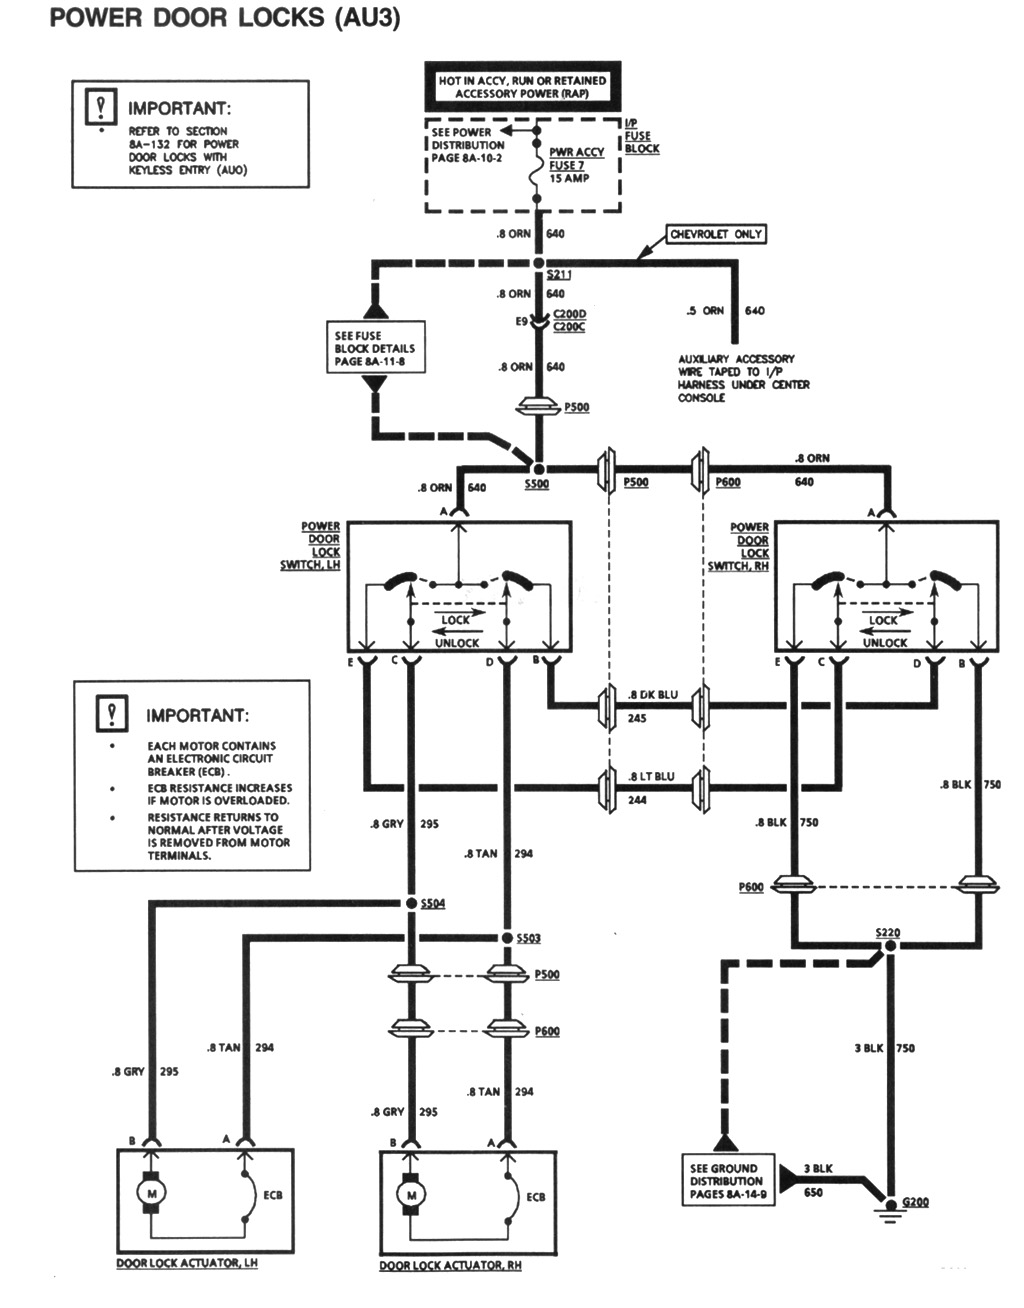 1994 Power Door Lock Schematic. Can Someone Please